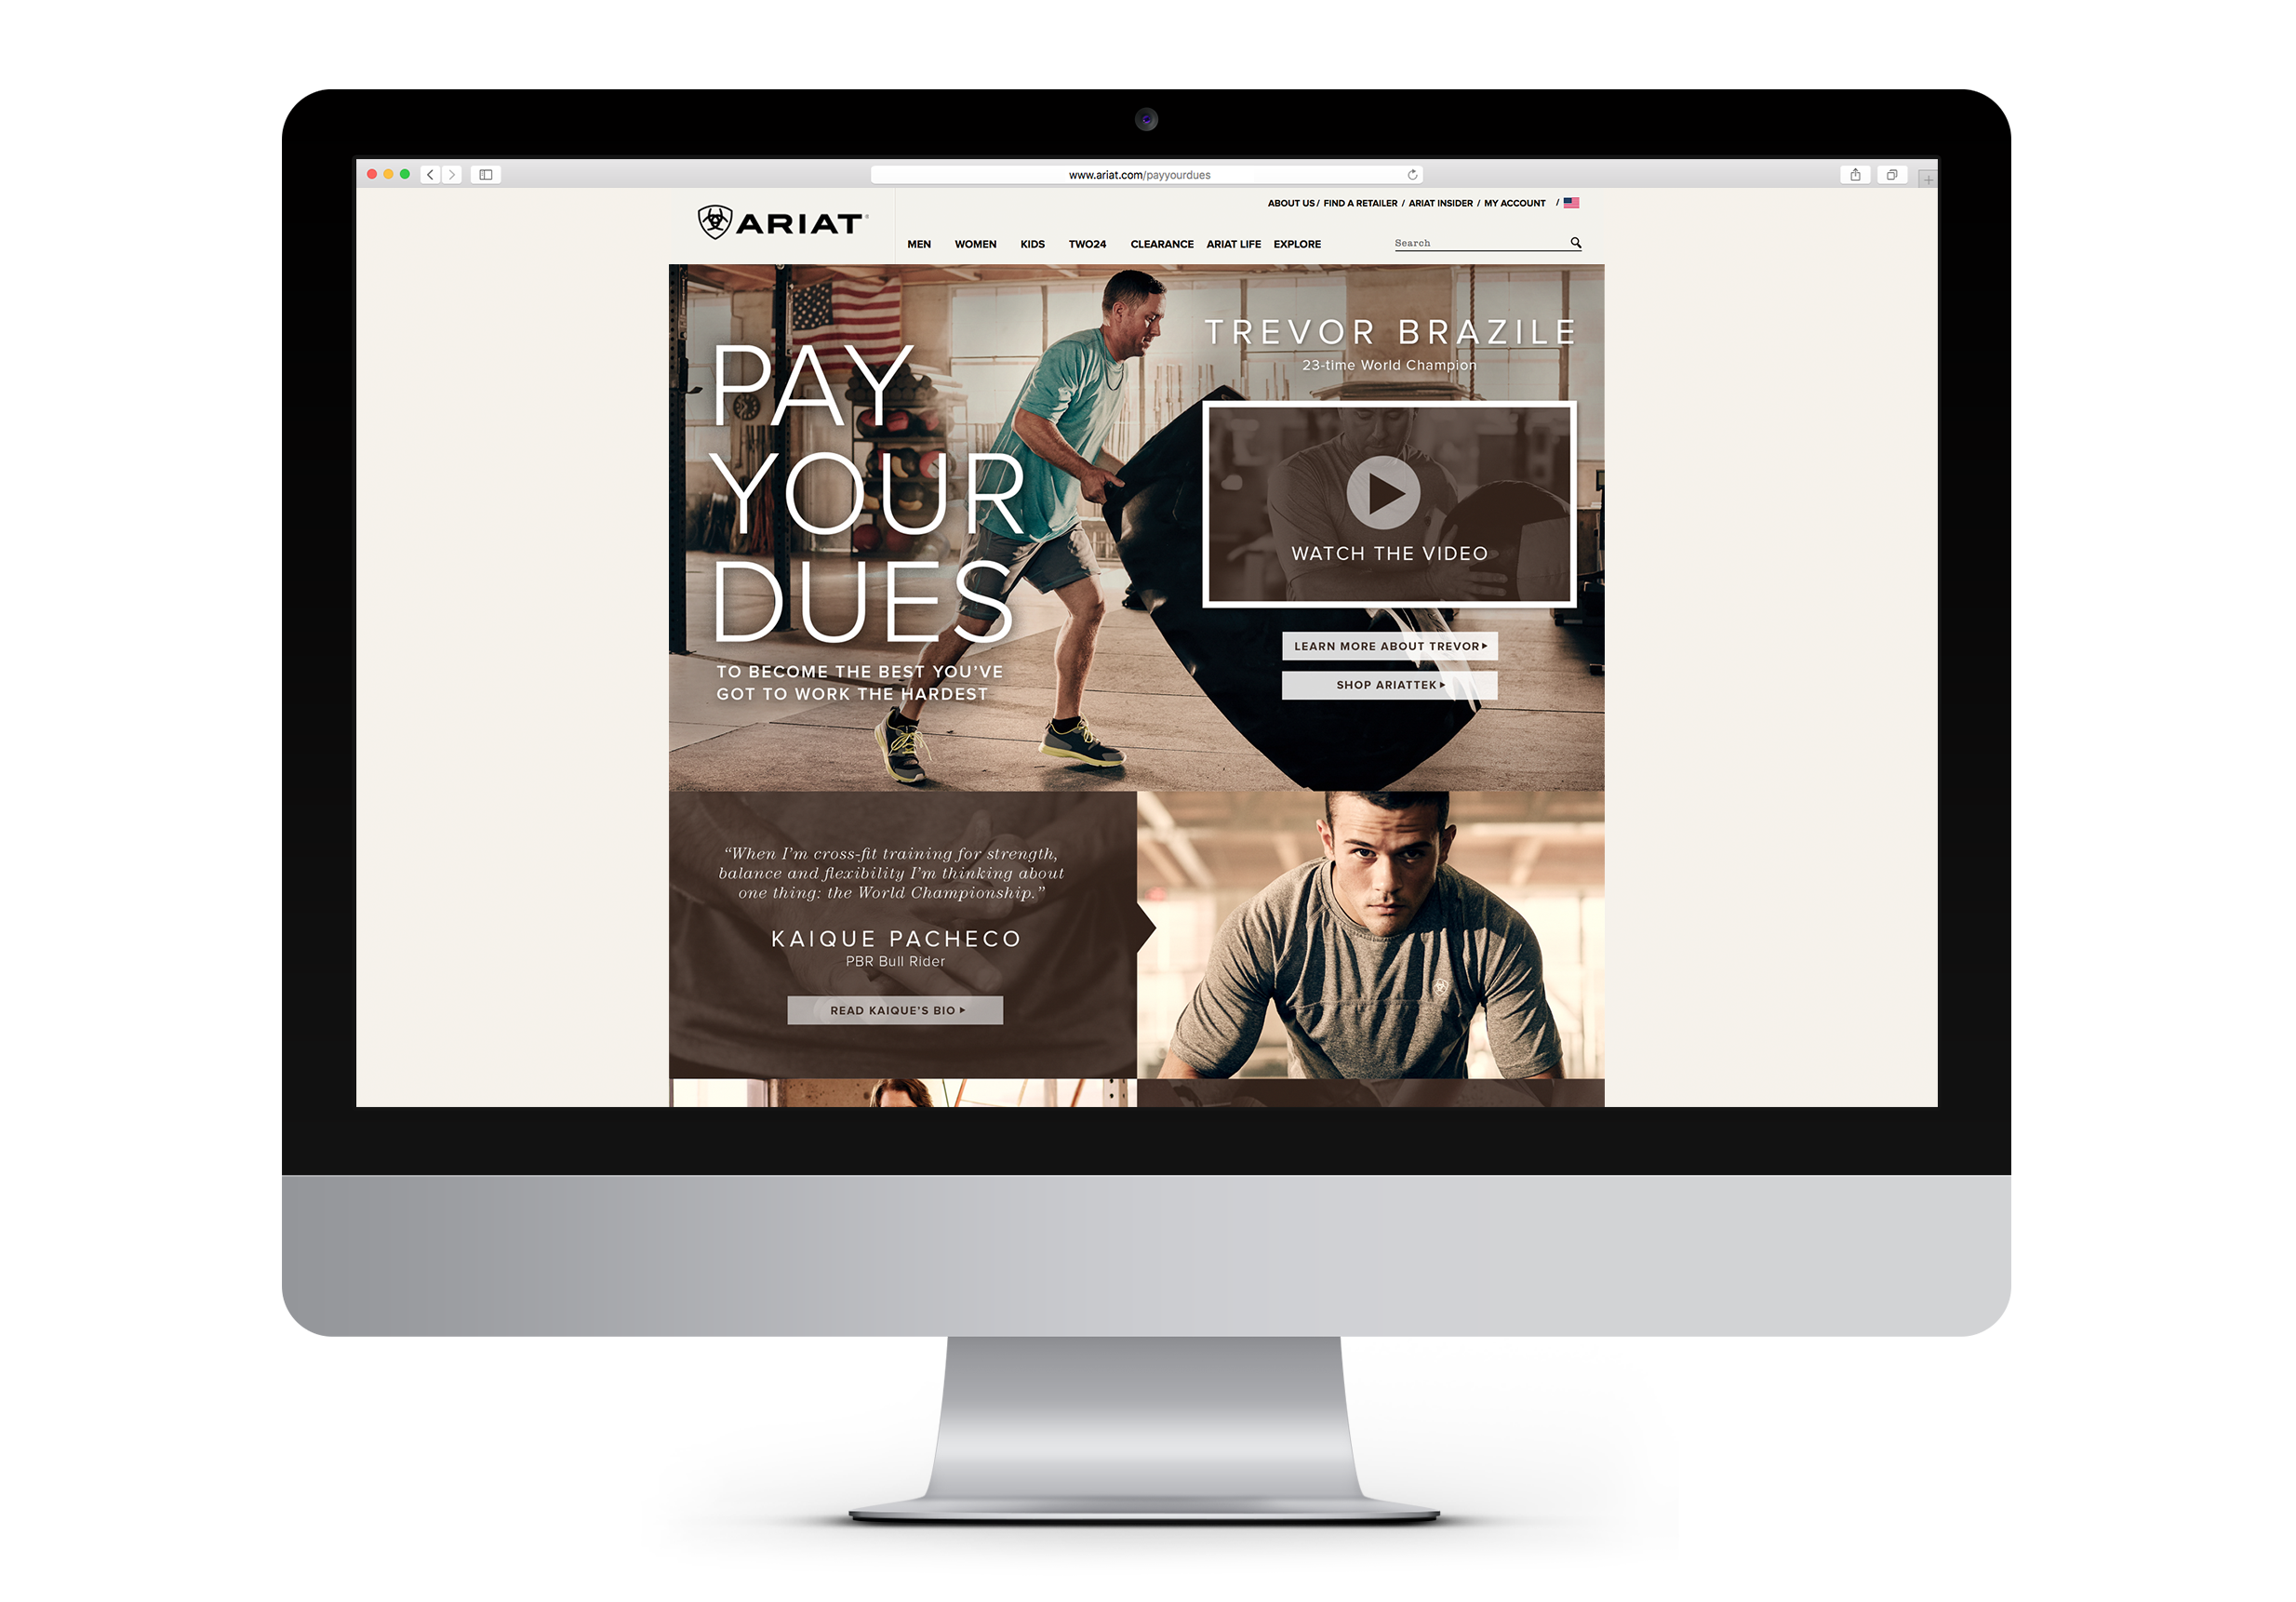 Ariat pay your dues workout clothing website landing page displayed on desktop computer